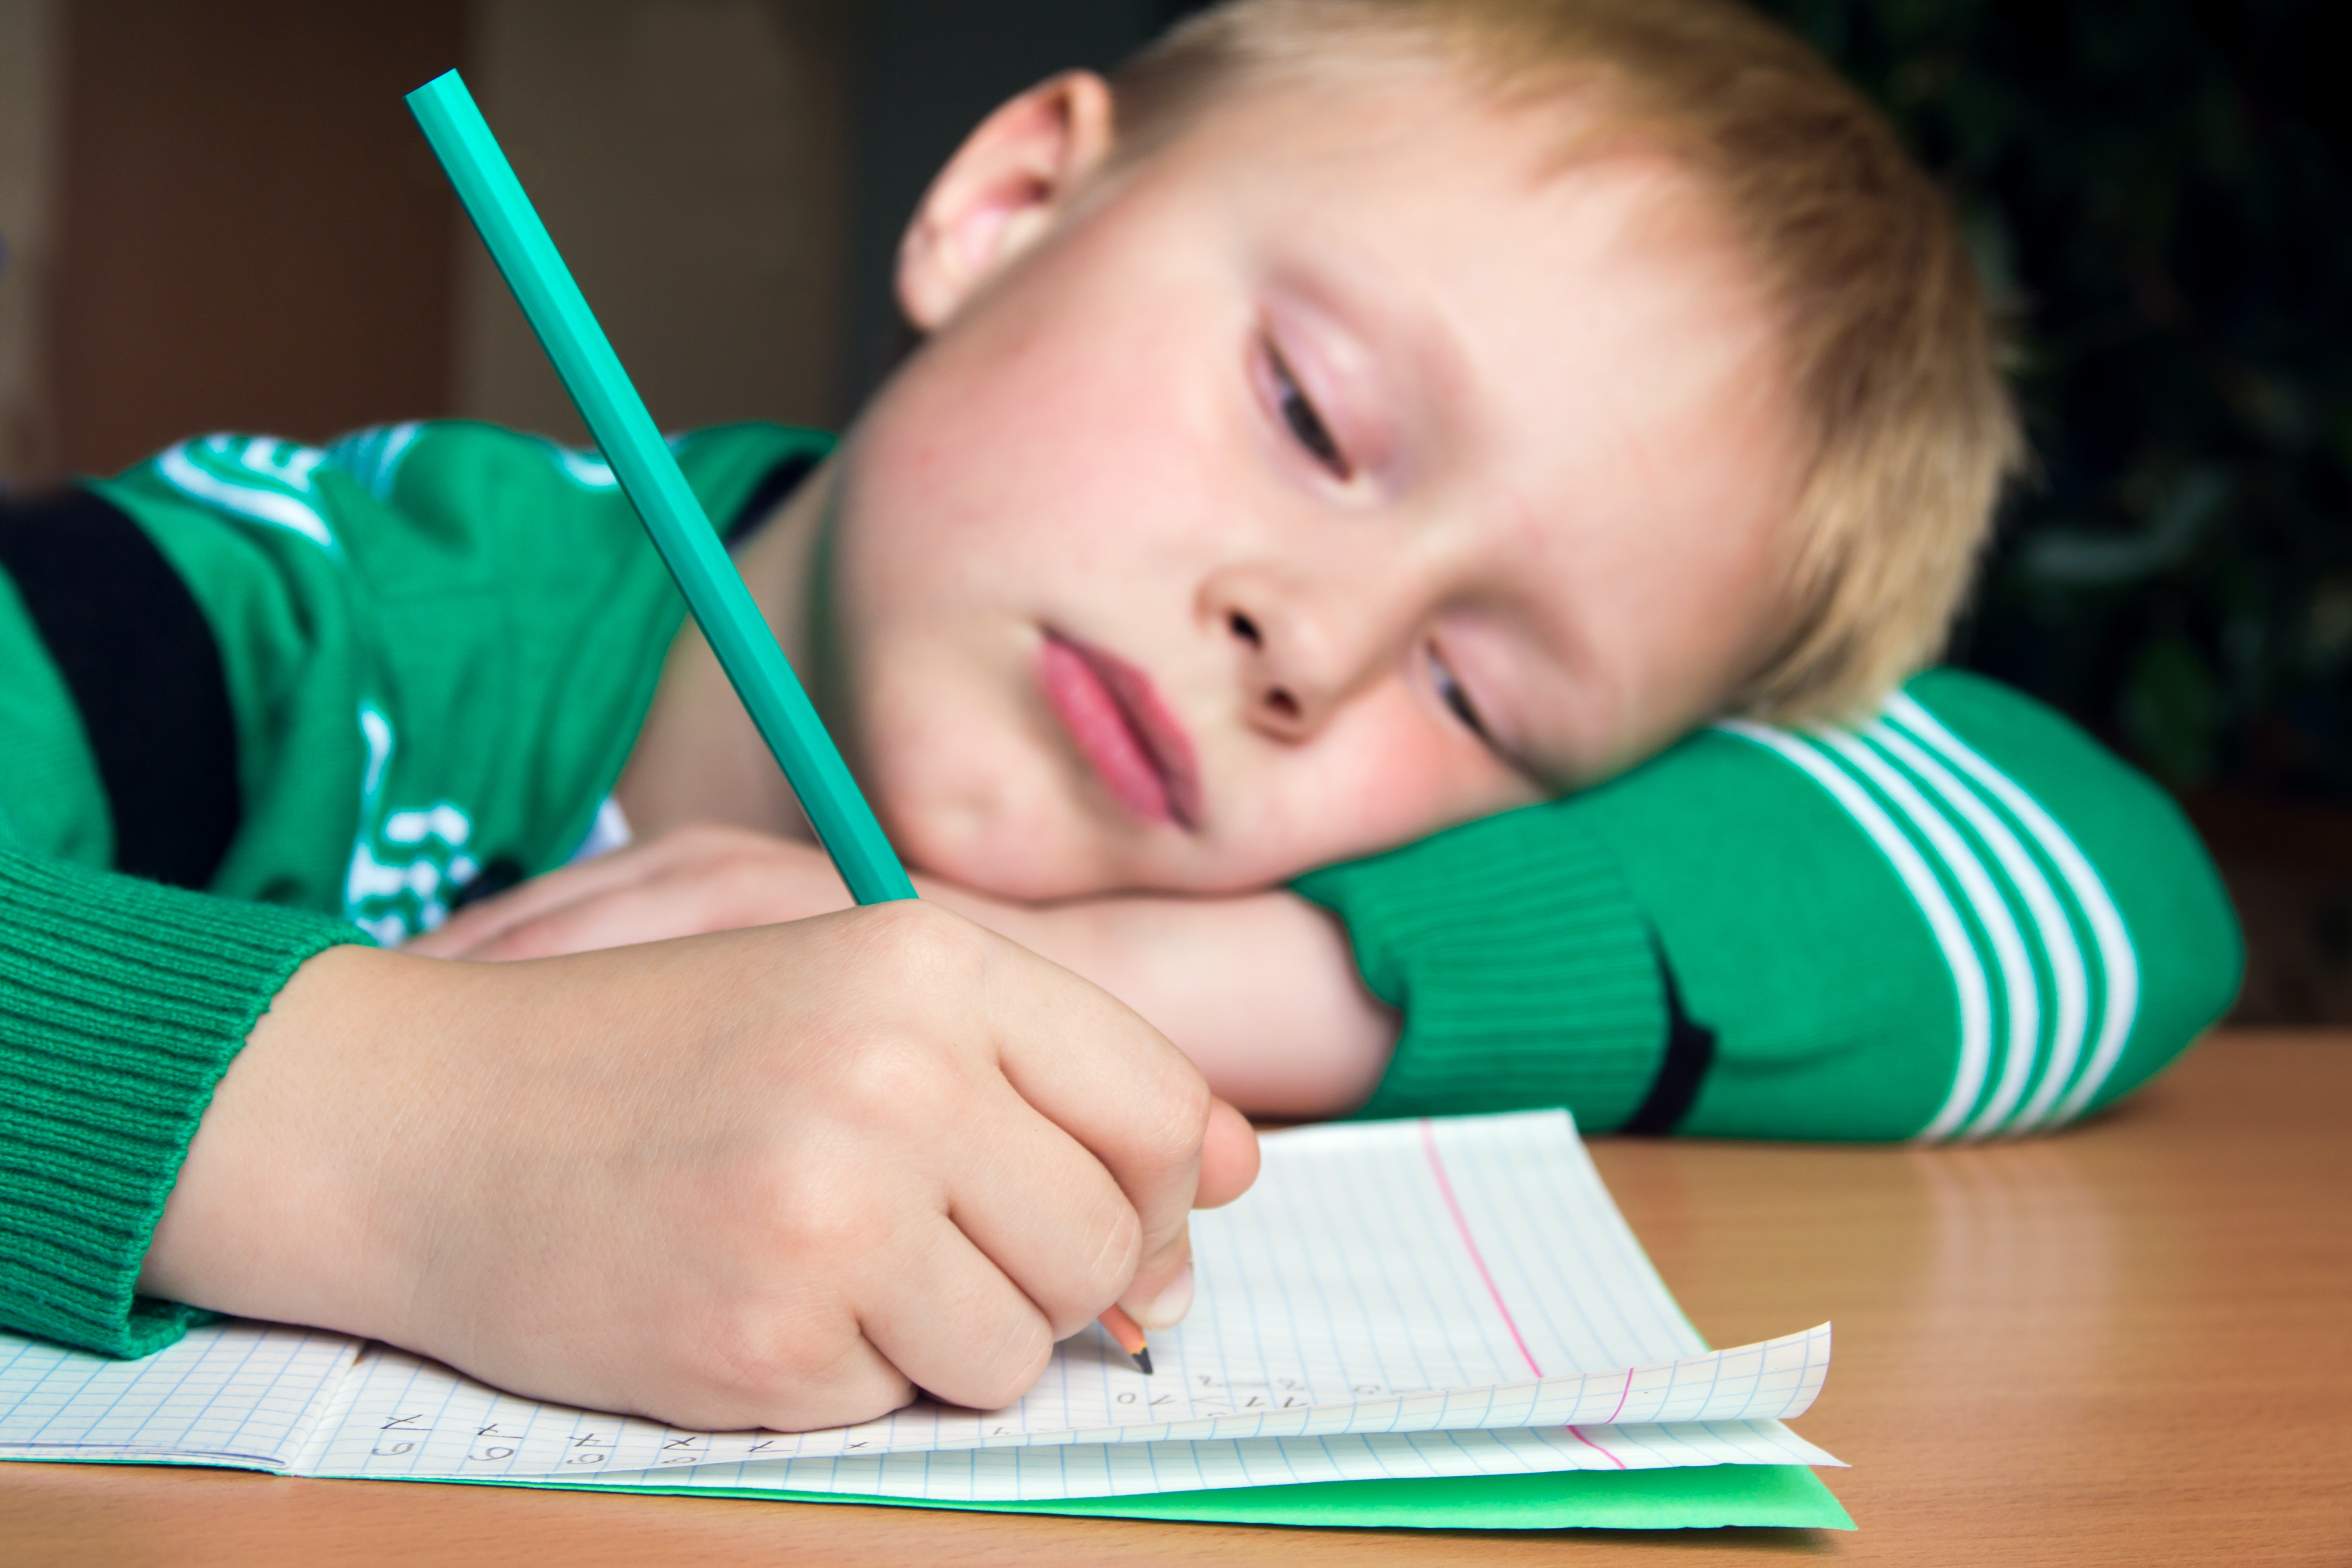 Where has the joy of writing gone and how do we get it back for our children?